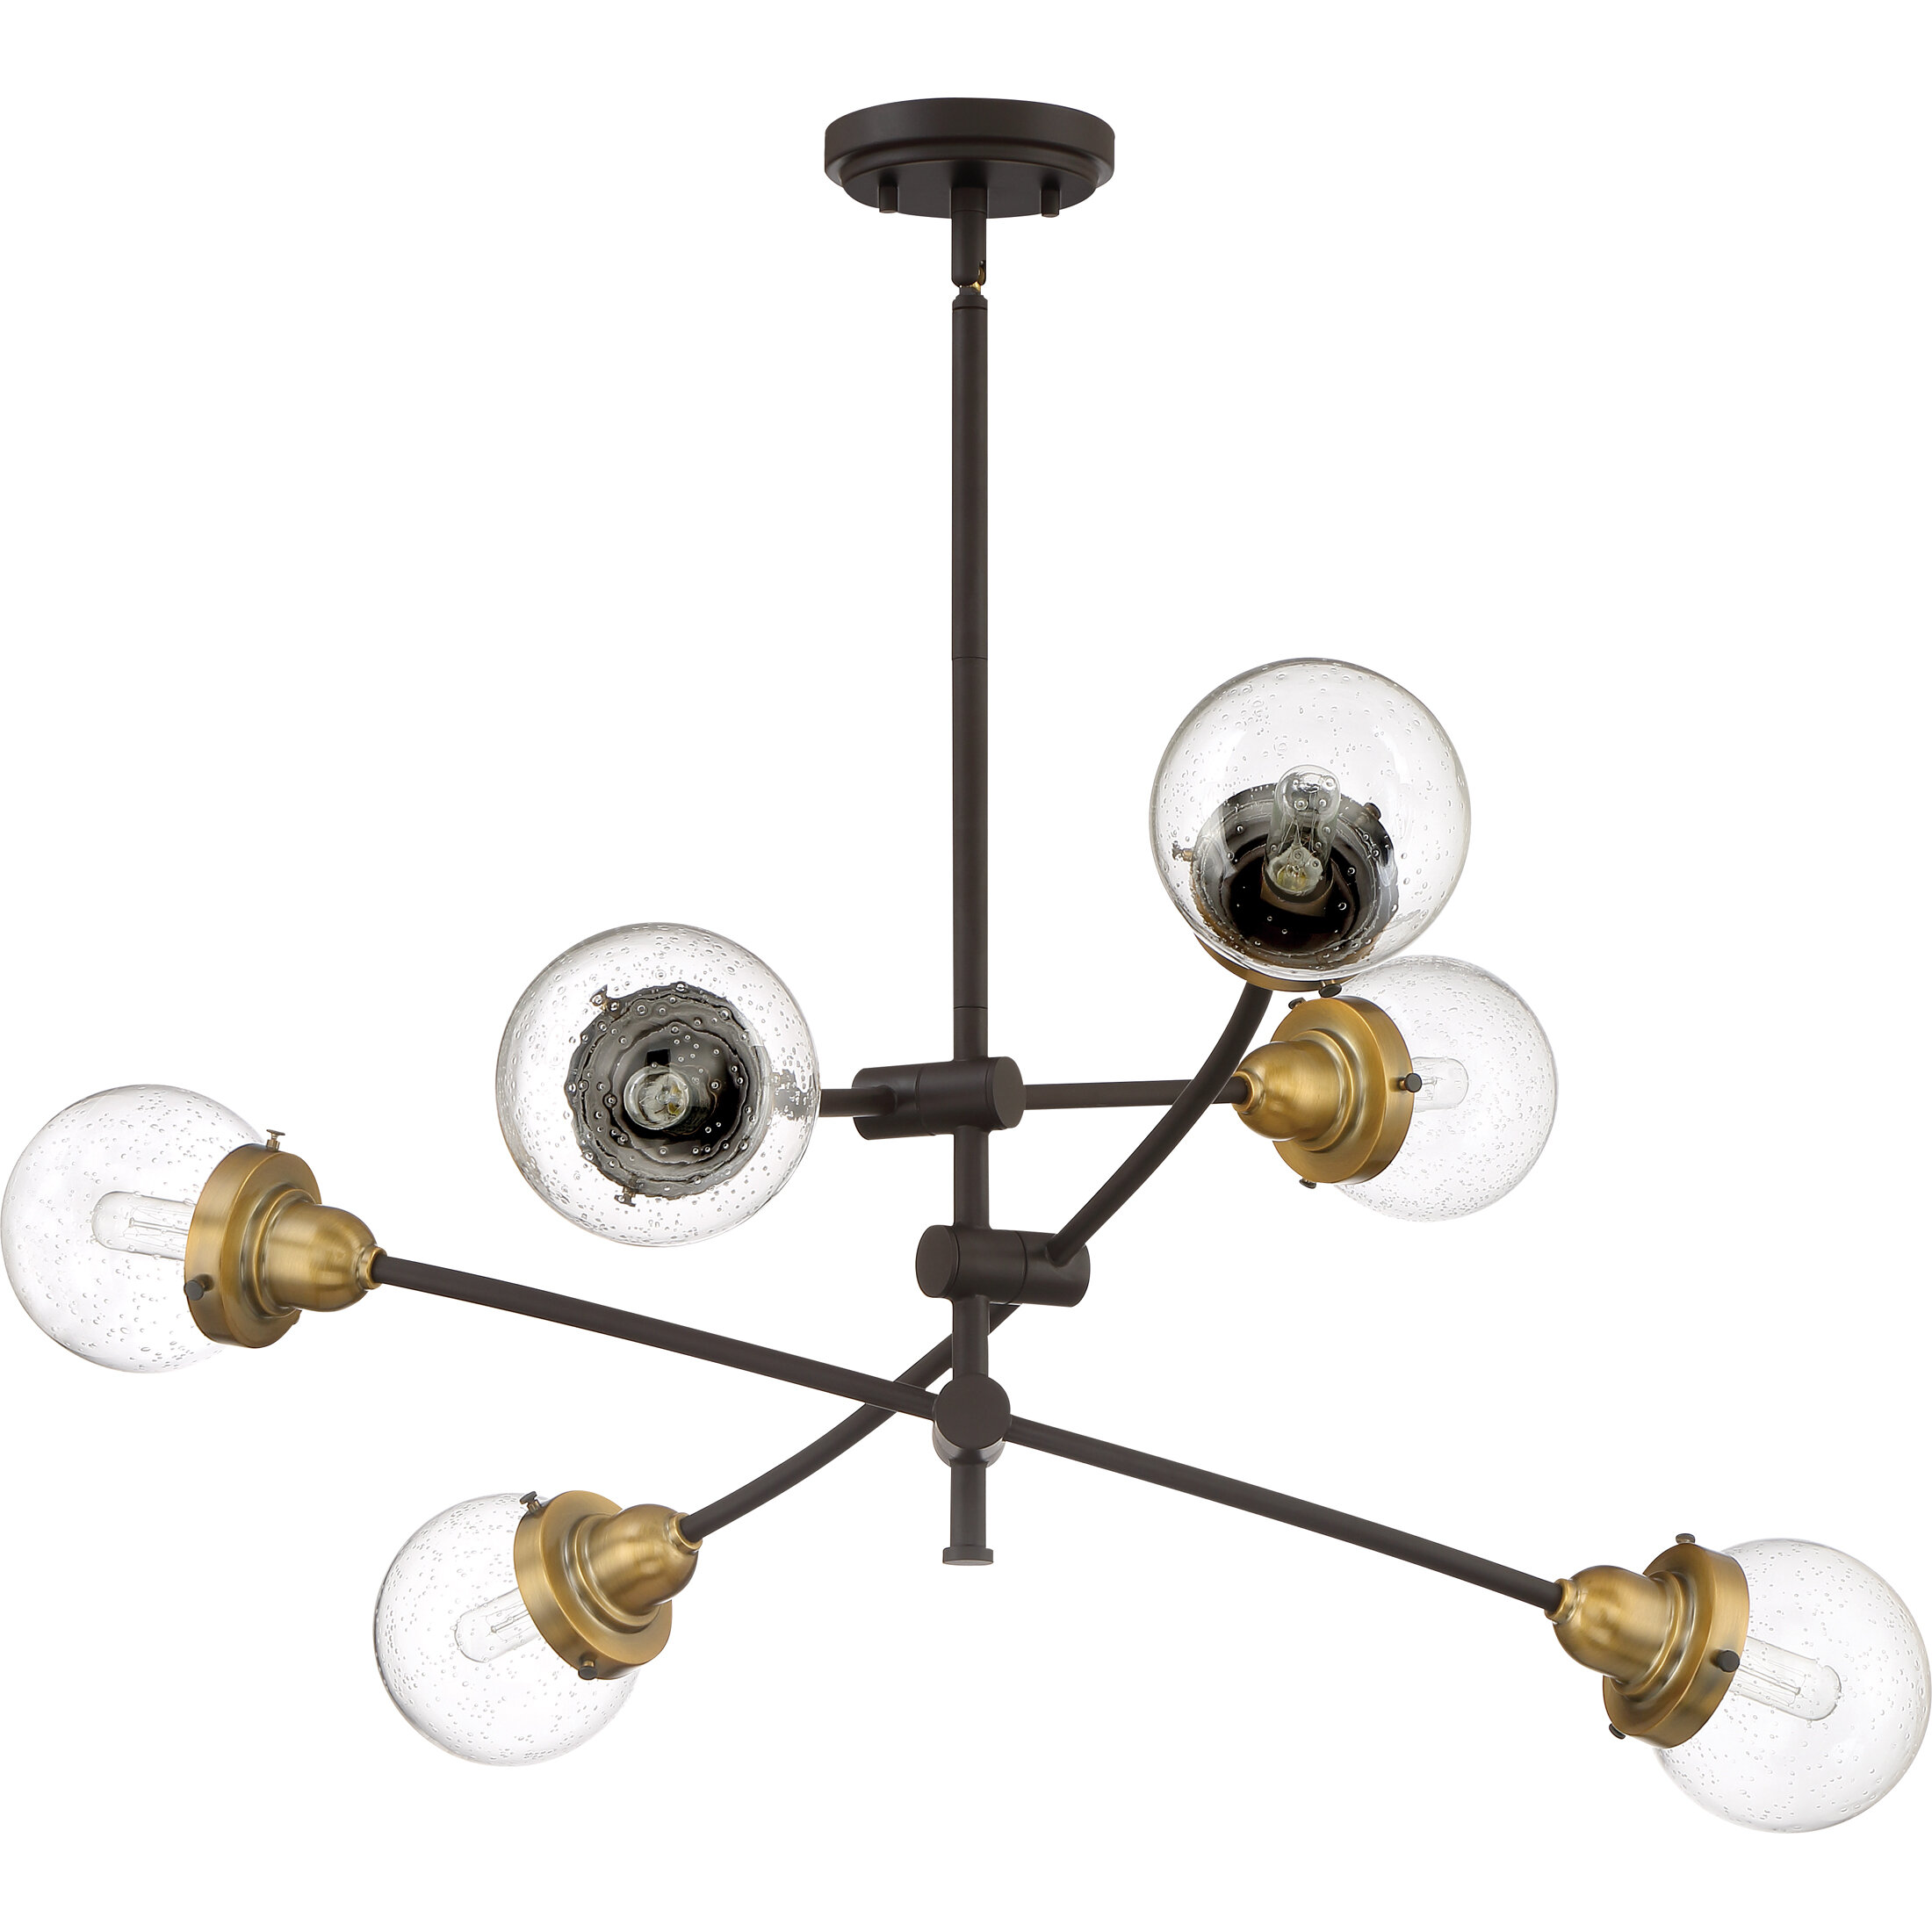 tricias urchin one reveal orc for chandelier take challenge details fall parisian feel sources apartment room modern